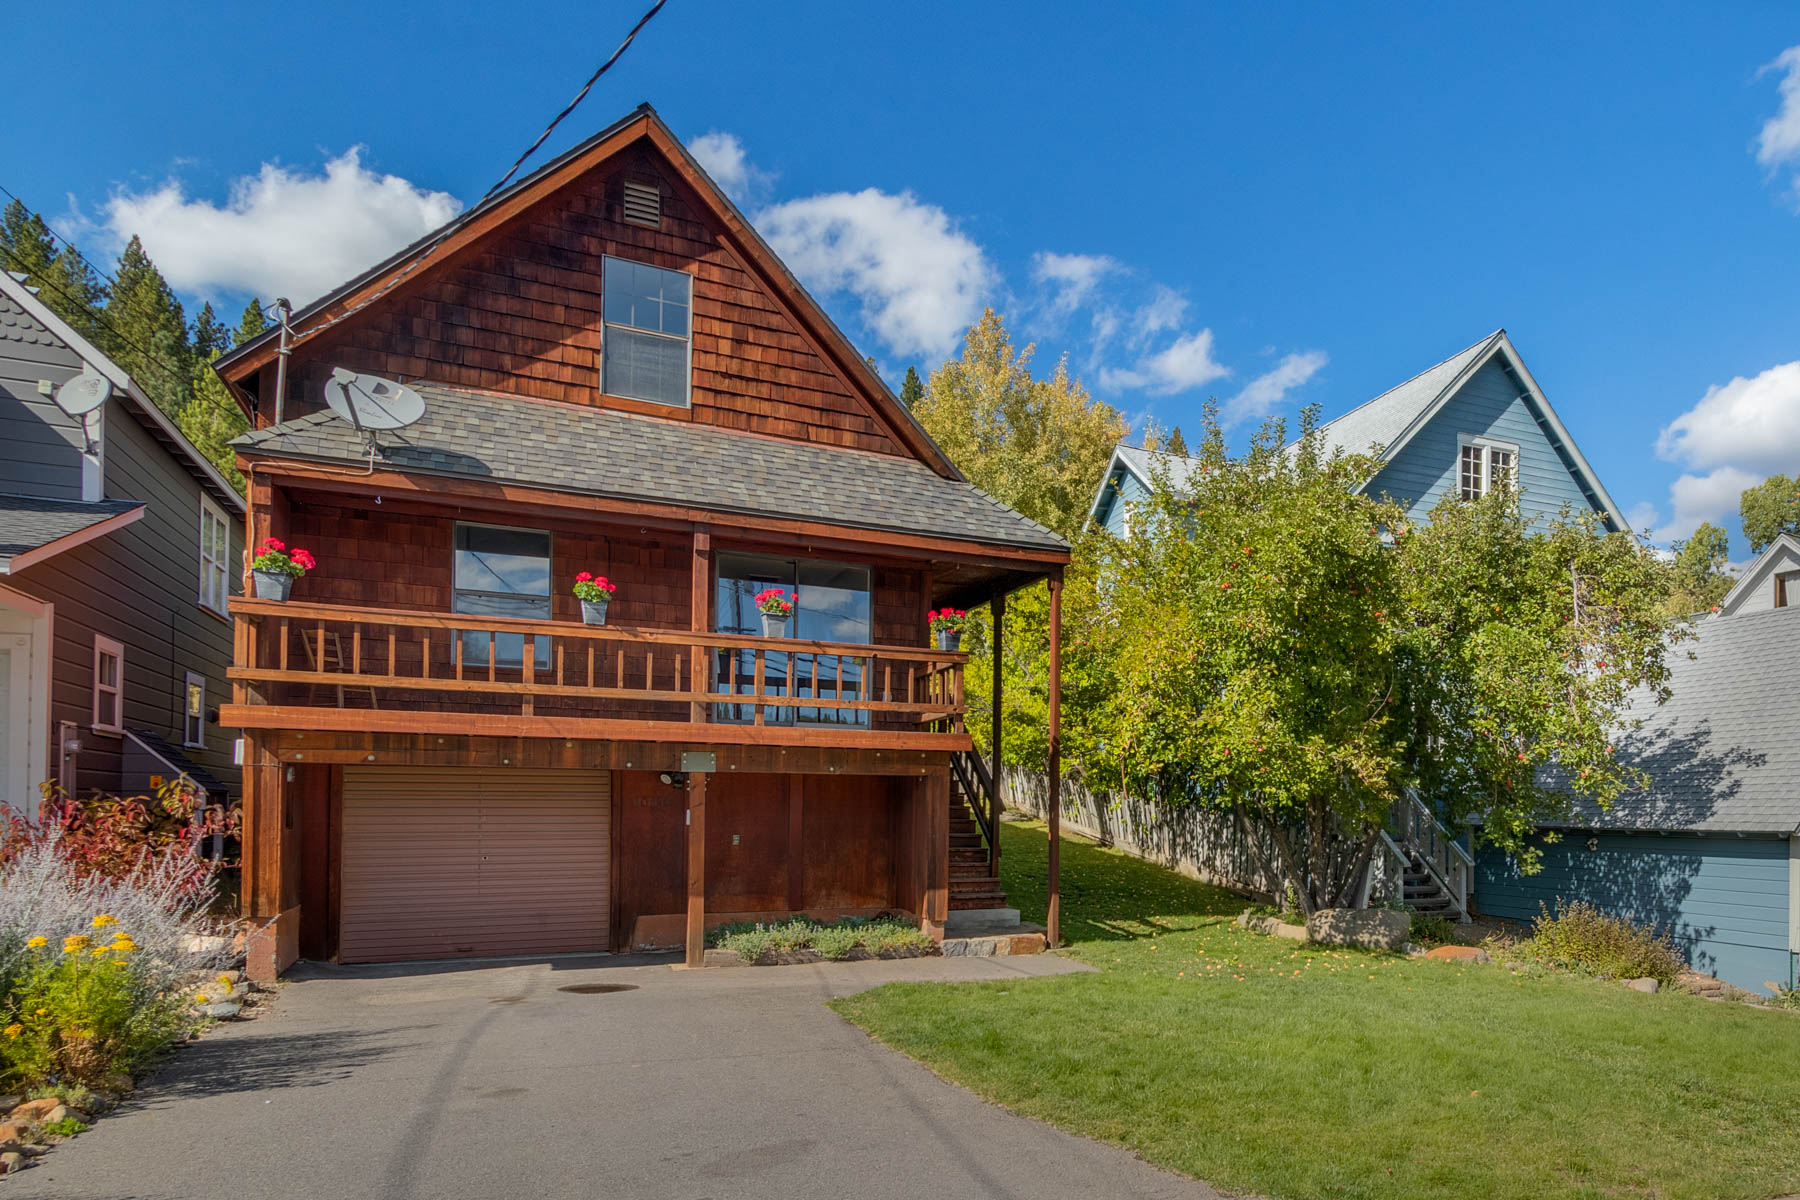 Single Family Homes for Active at 10190 Keiser Ave., Truckee, CA 10190 Keiser Ave. Truckee, California 96161 United States